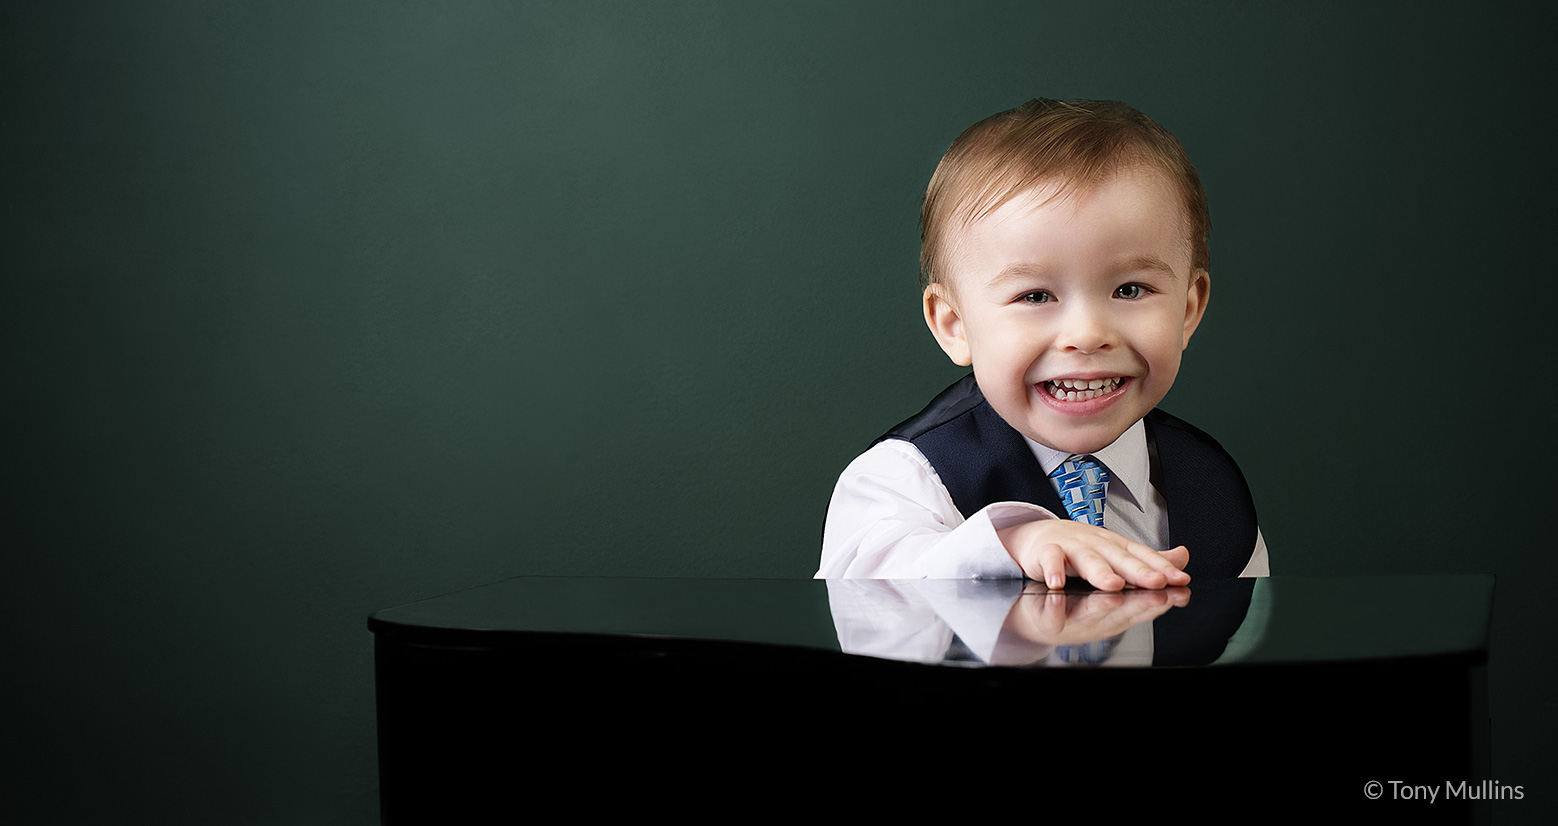 A playful portrait of a child next to a mini piano.